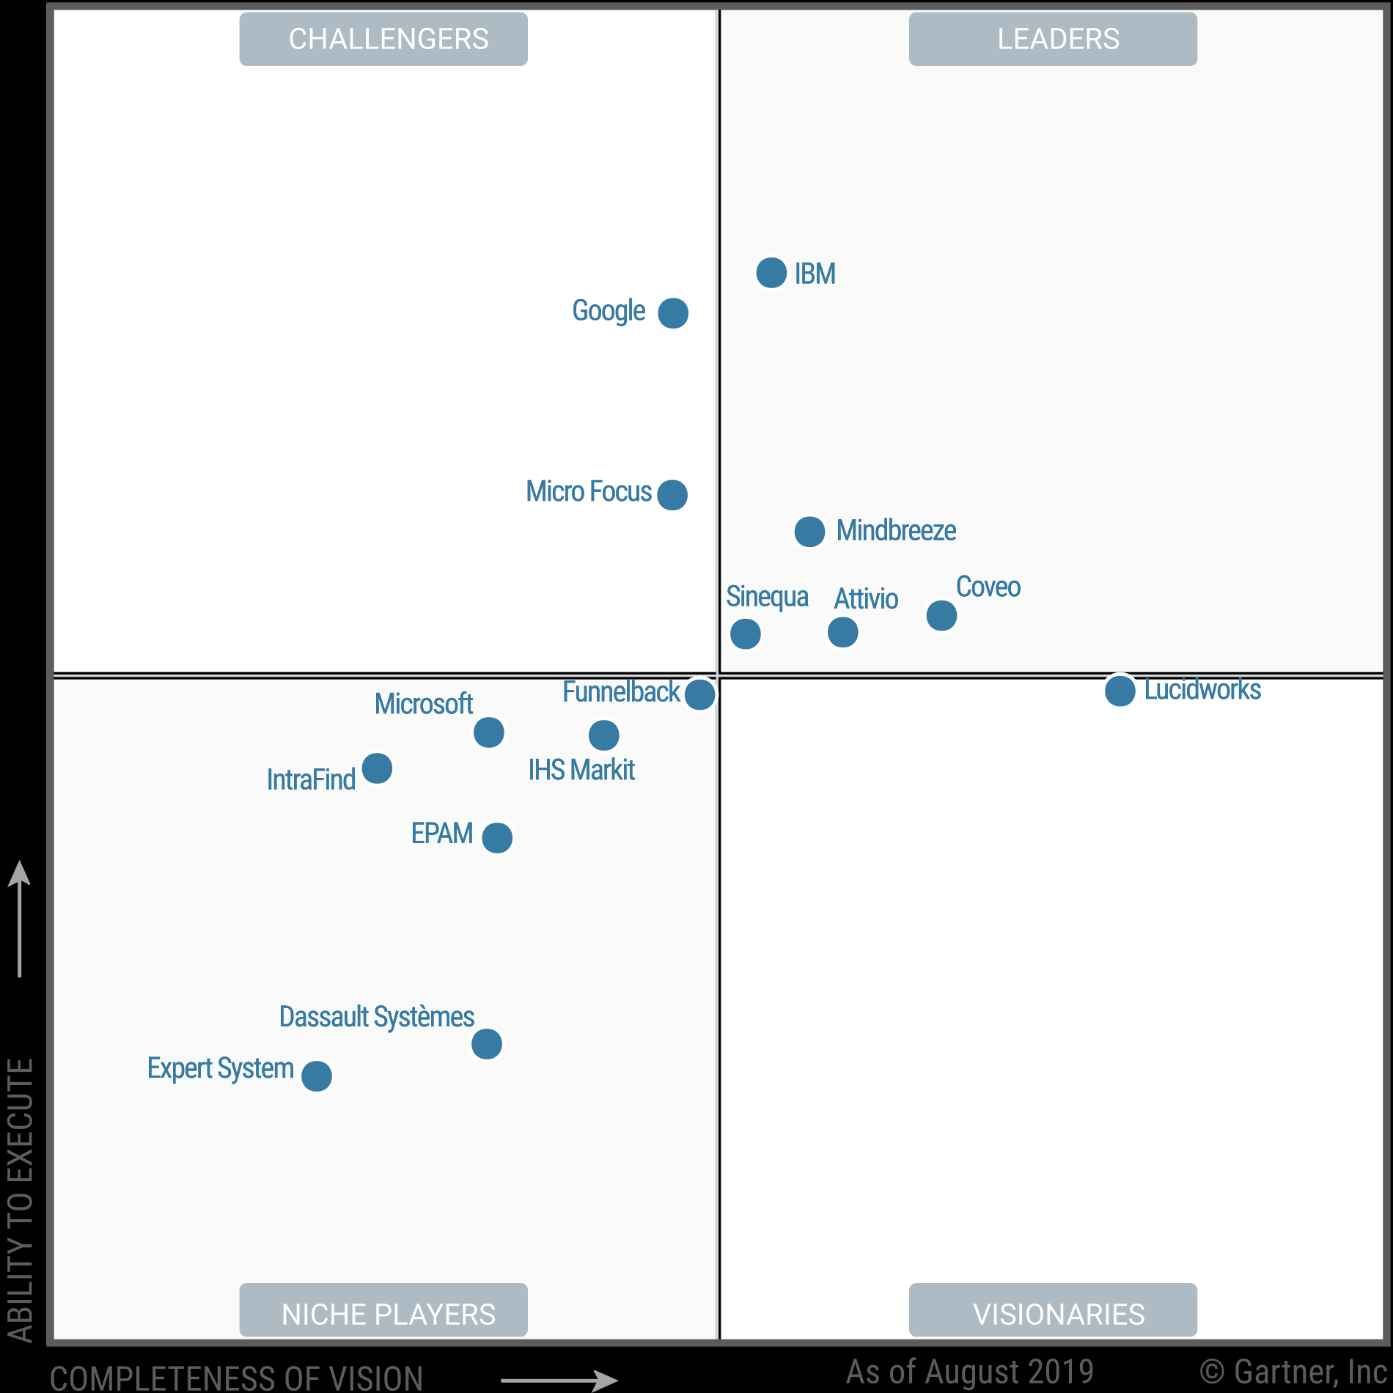 Gartner Magic Quadrant 2019 results